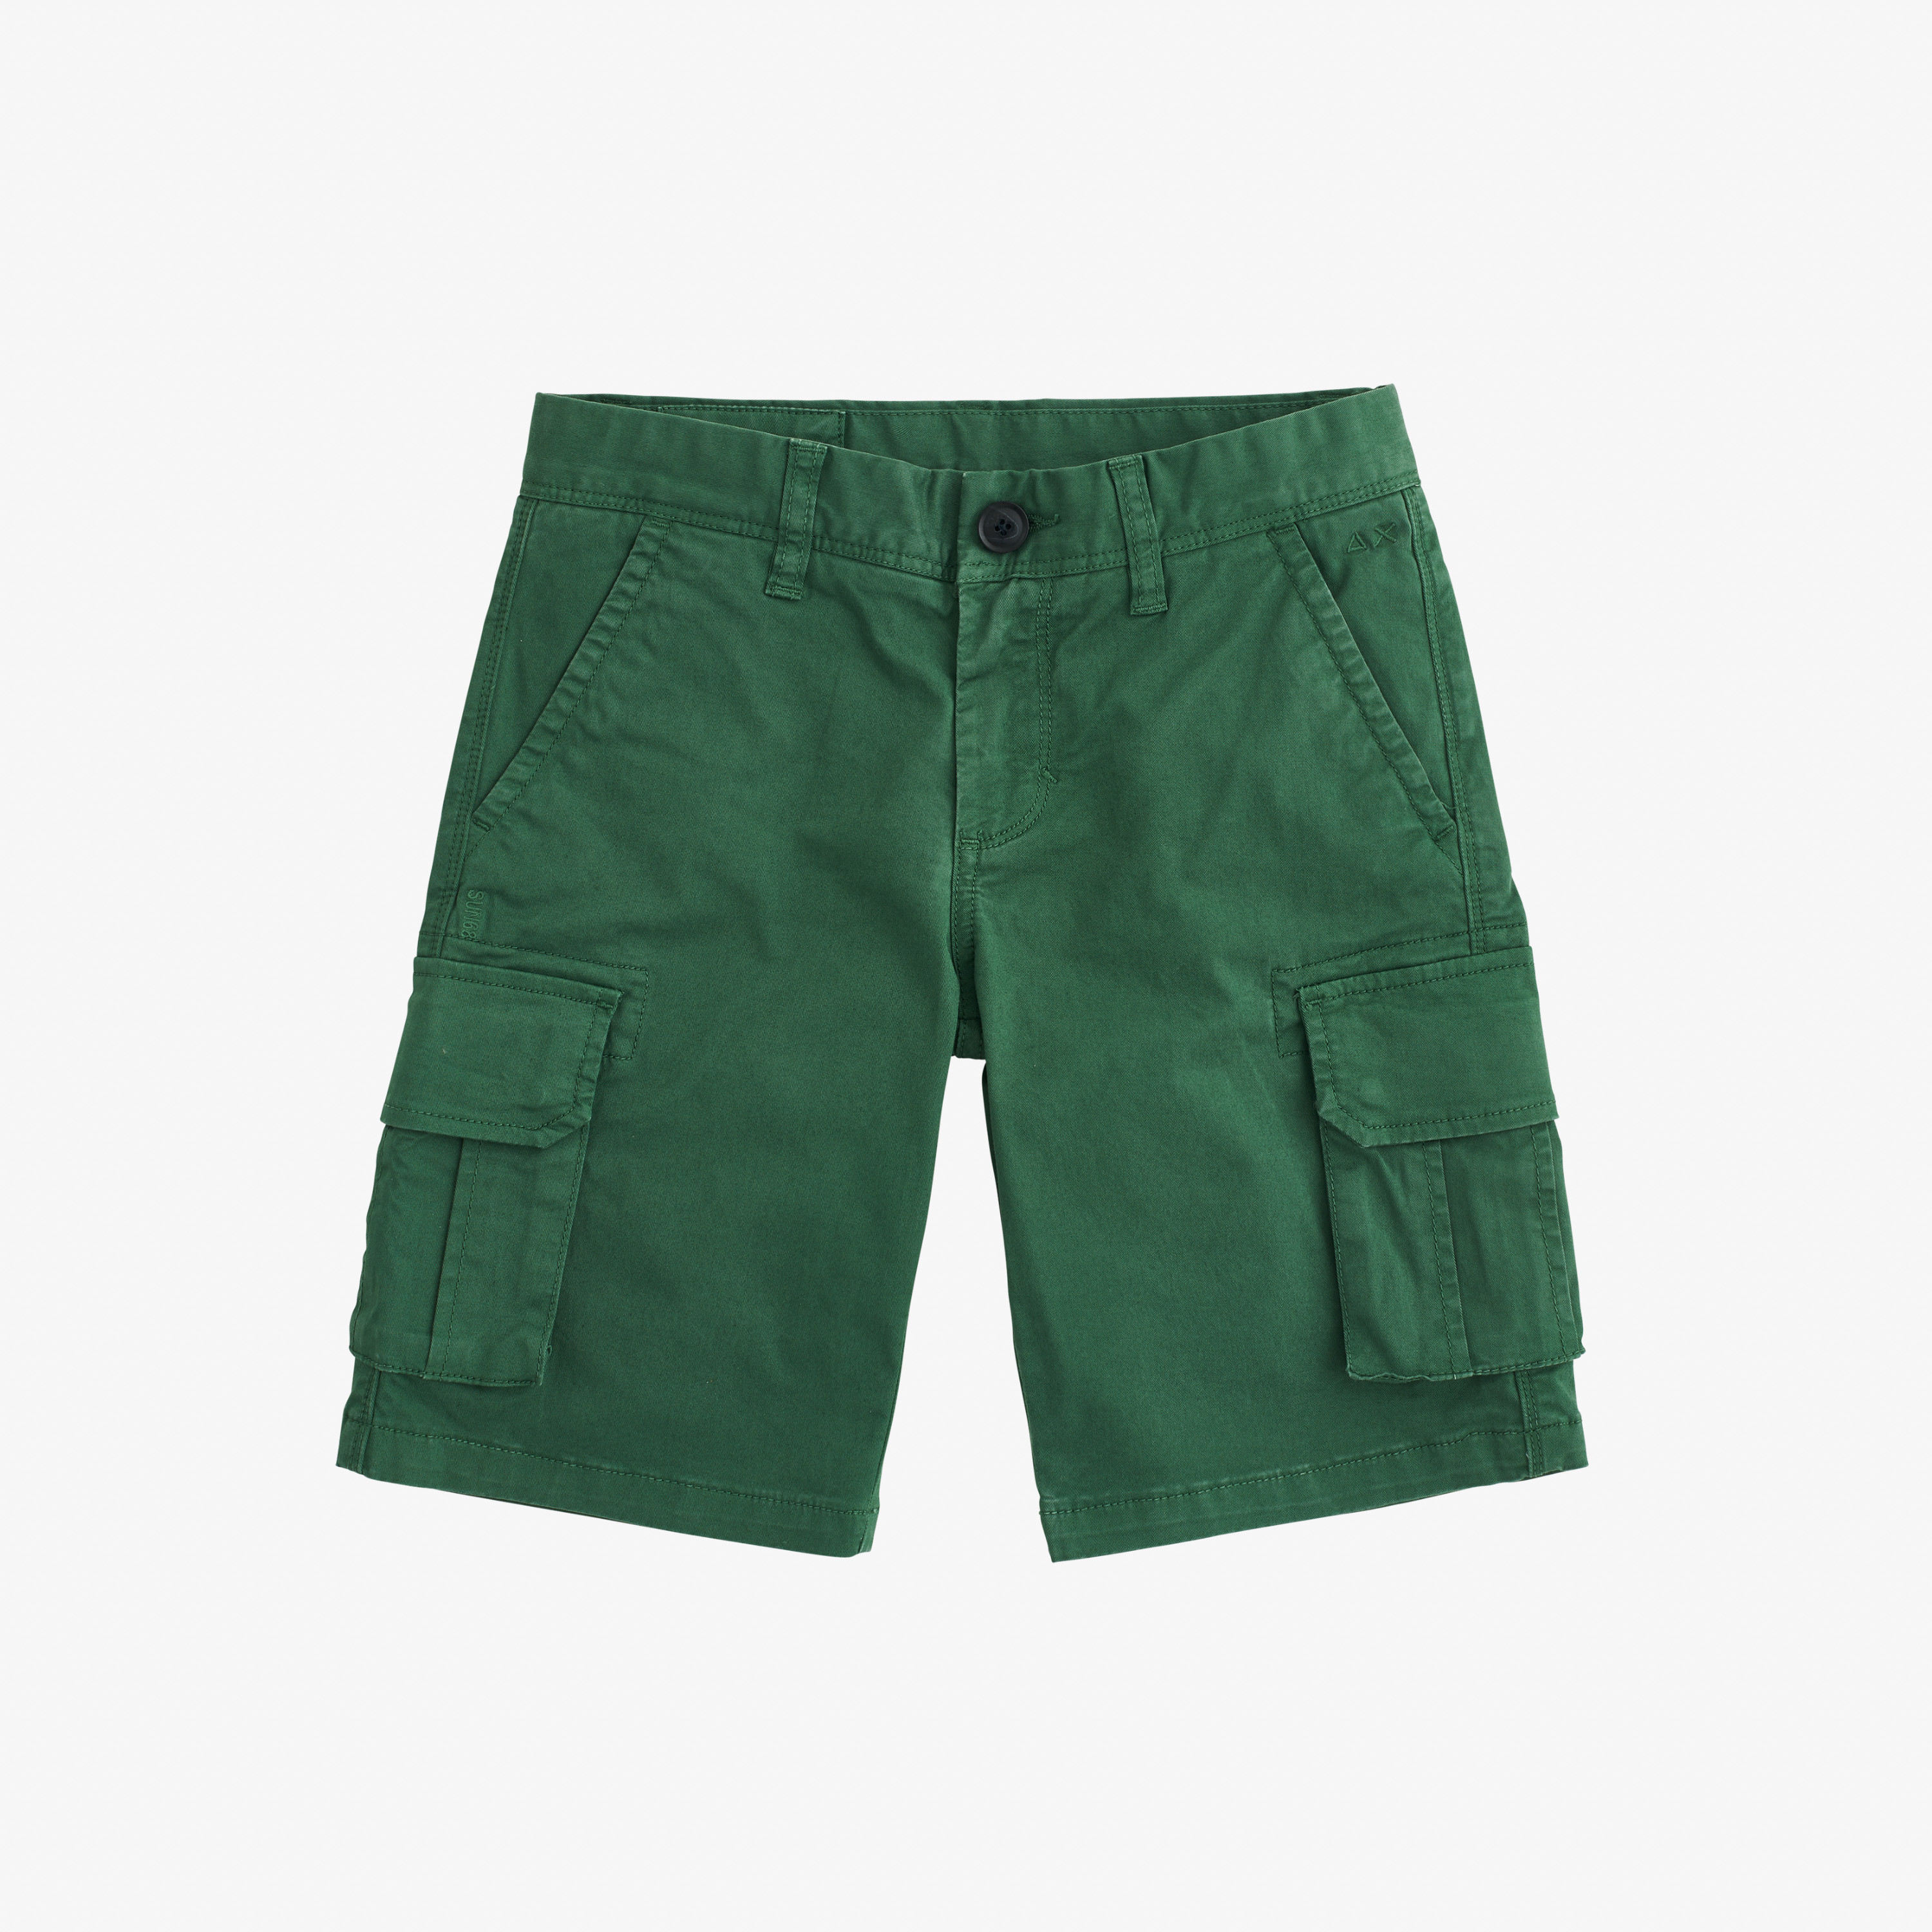 BOY'S MILITARY PANT SOLID SAGE GREEN